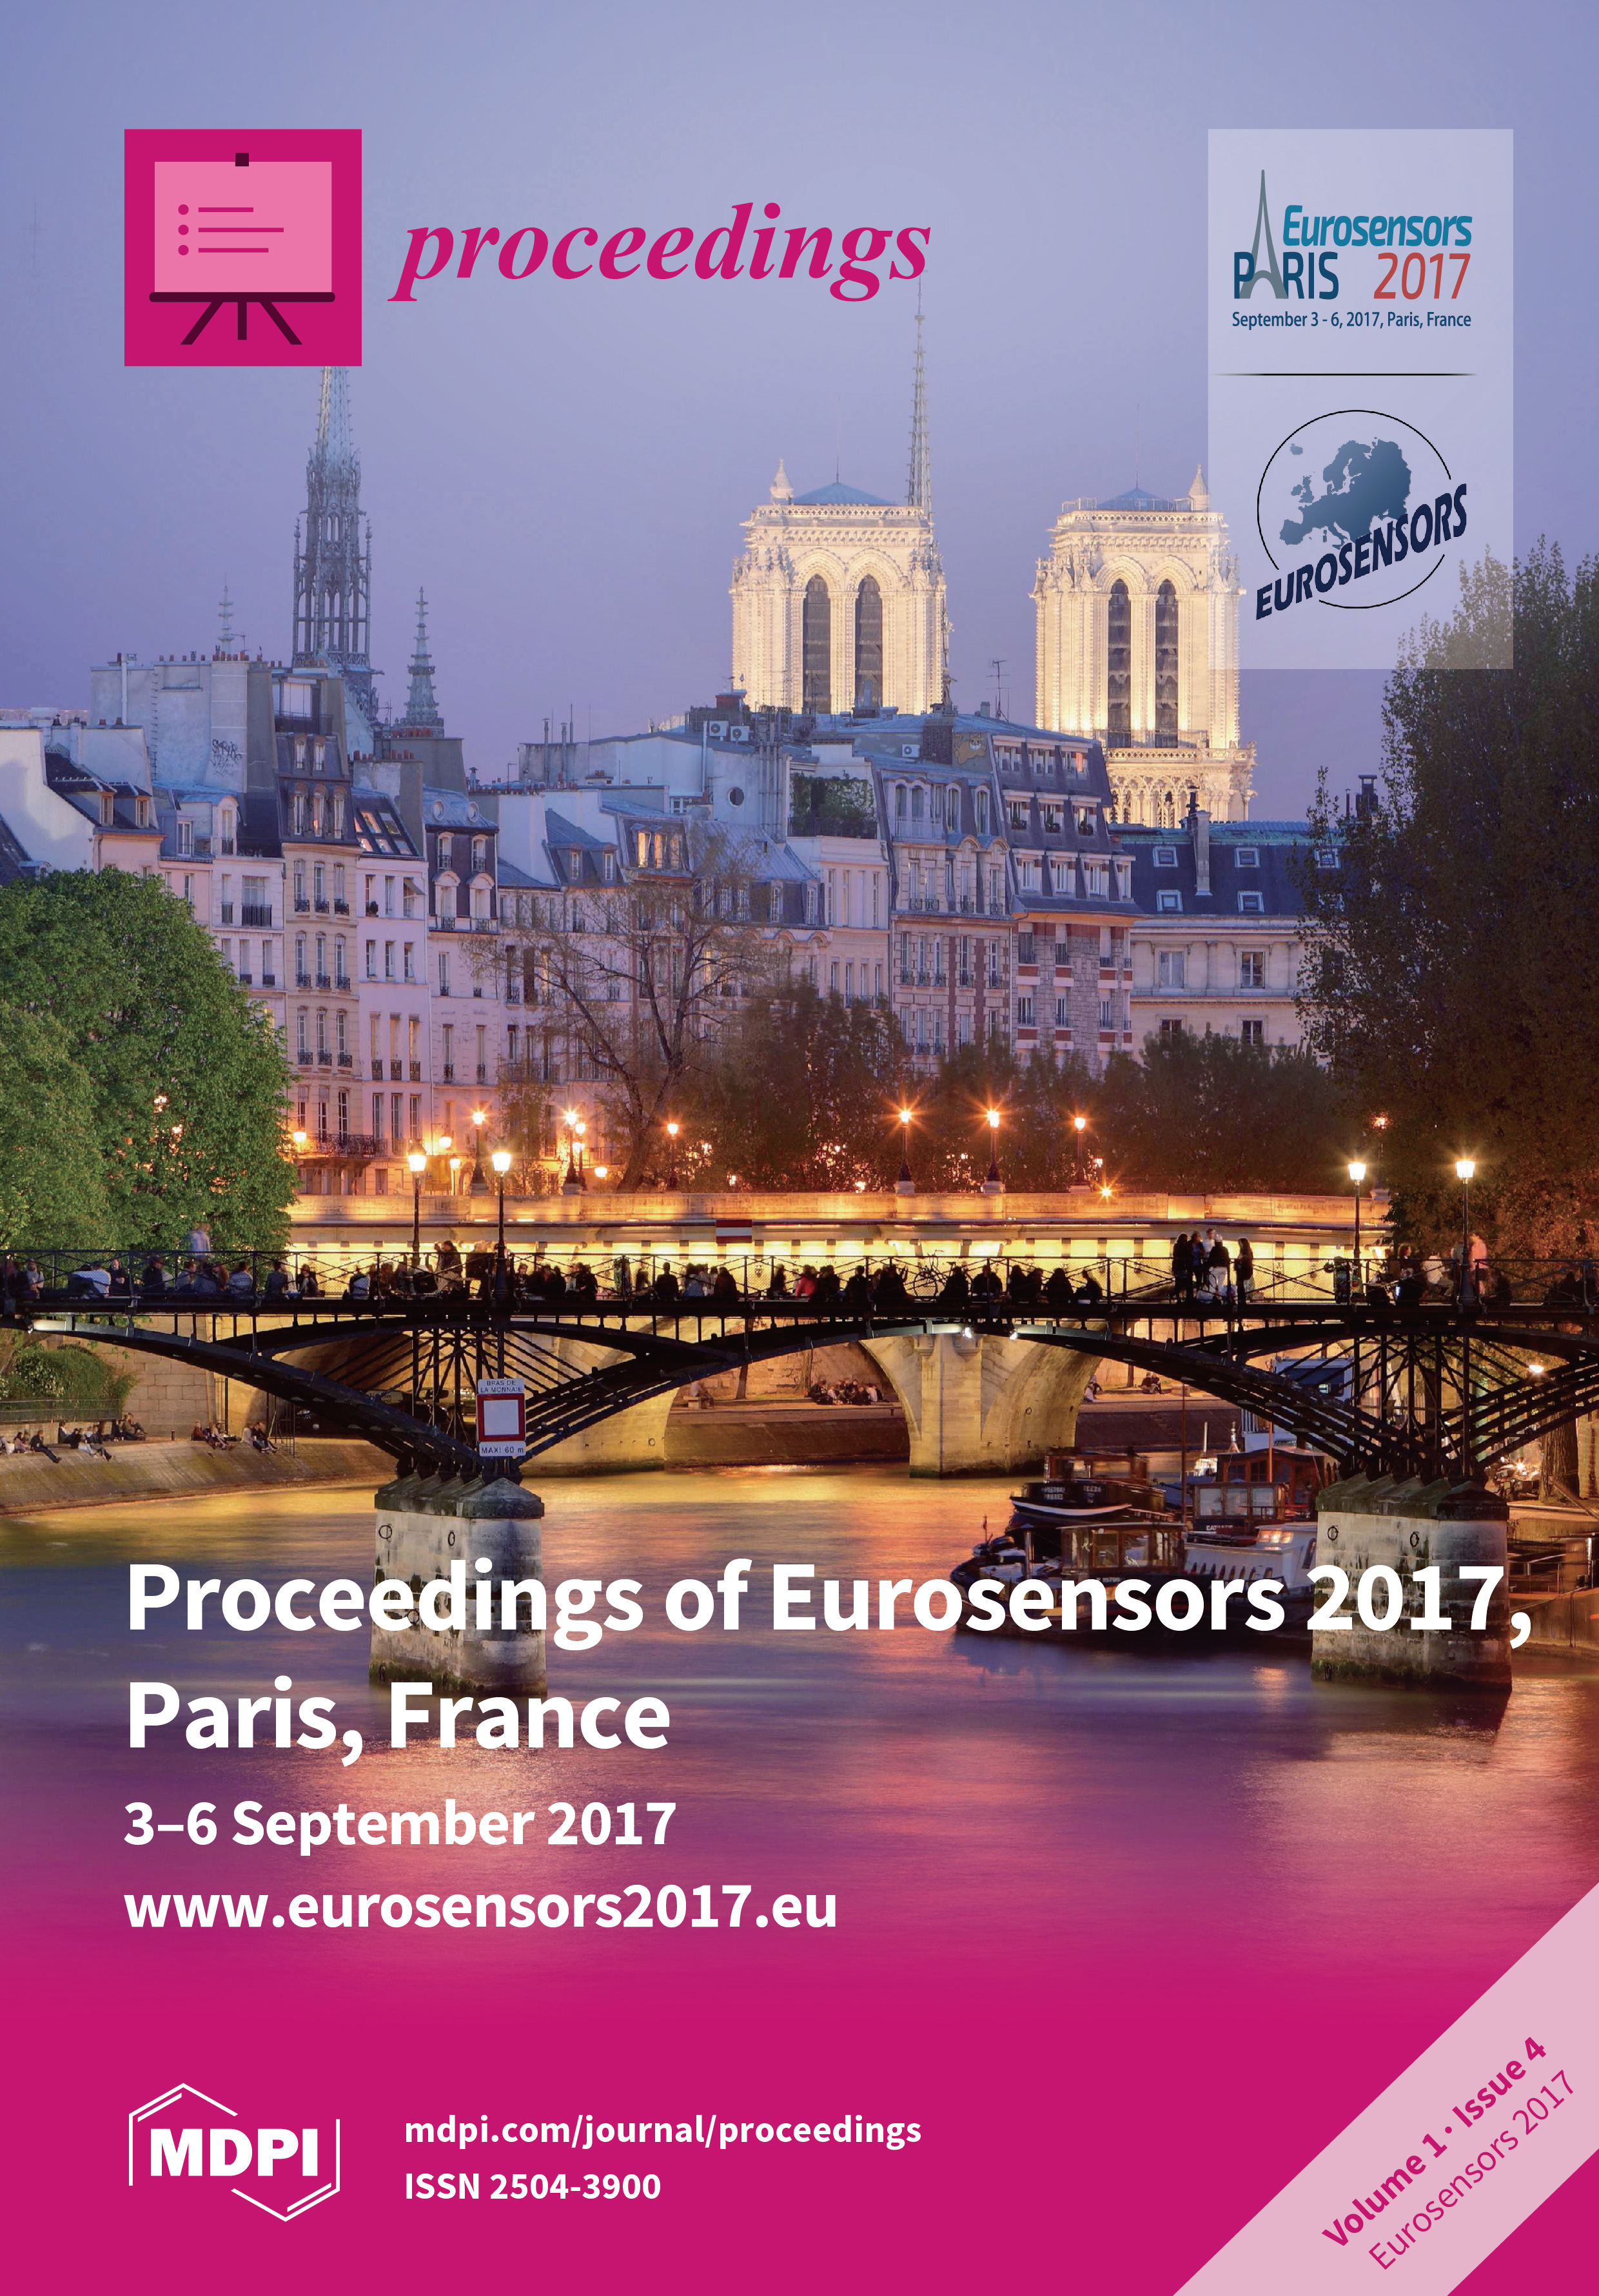 Immagini Natale We Heart It.Proceedings Eurosensors 2017 Browse Articles